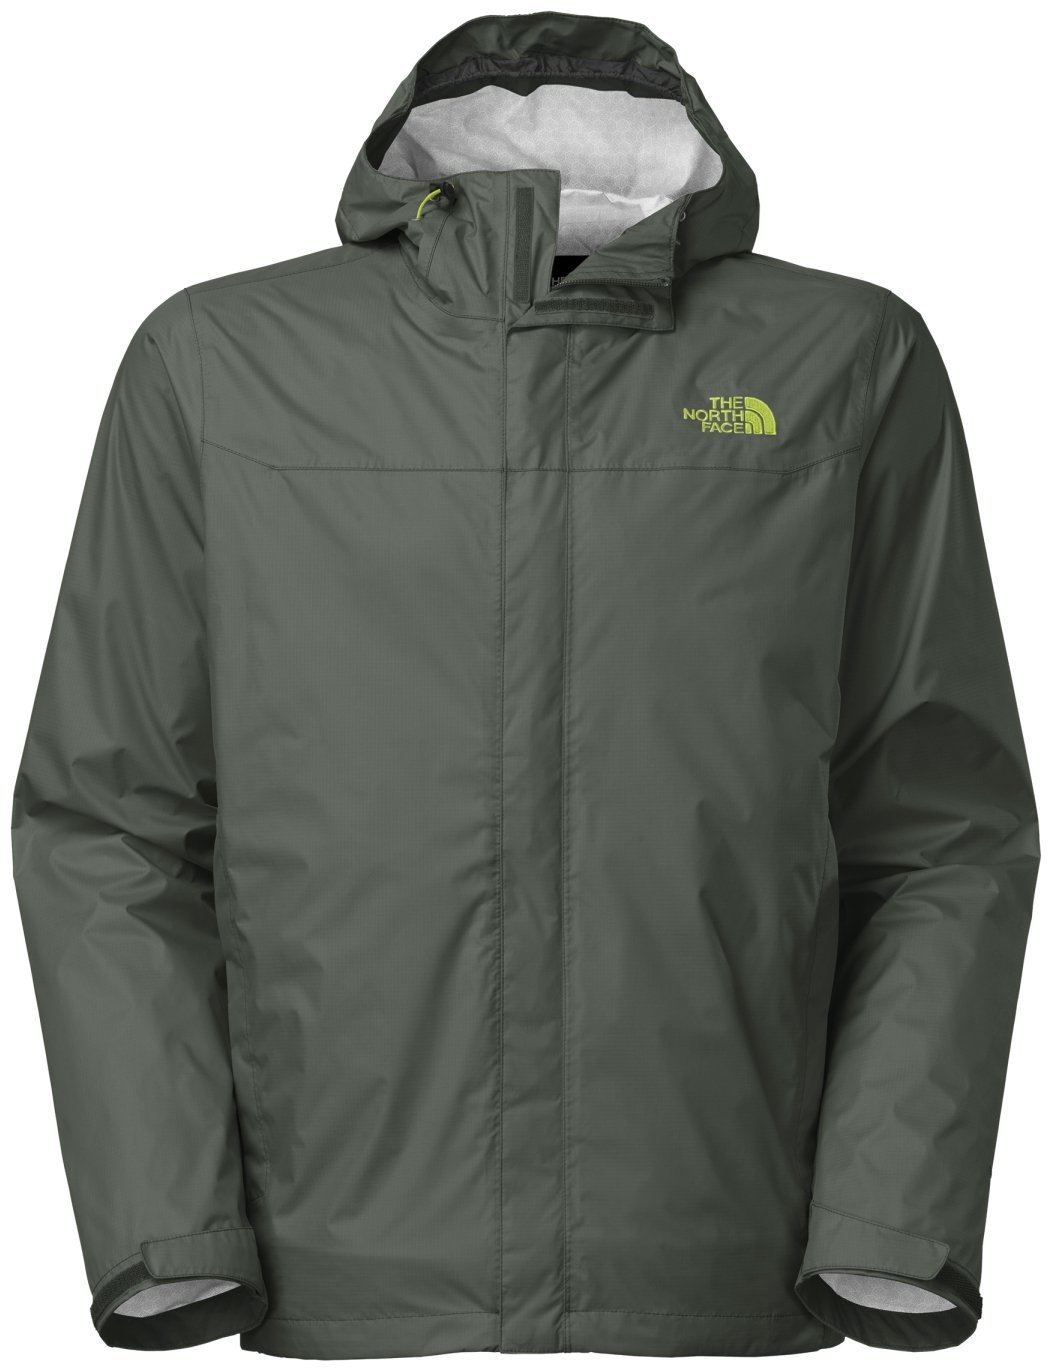 Super Lightweight North Face Rain Jacket (Men) Image